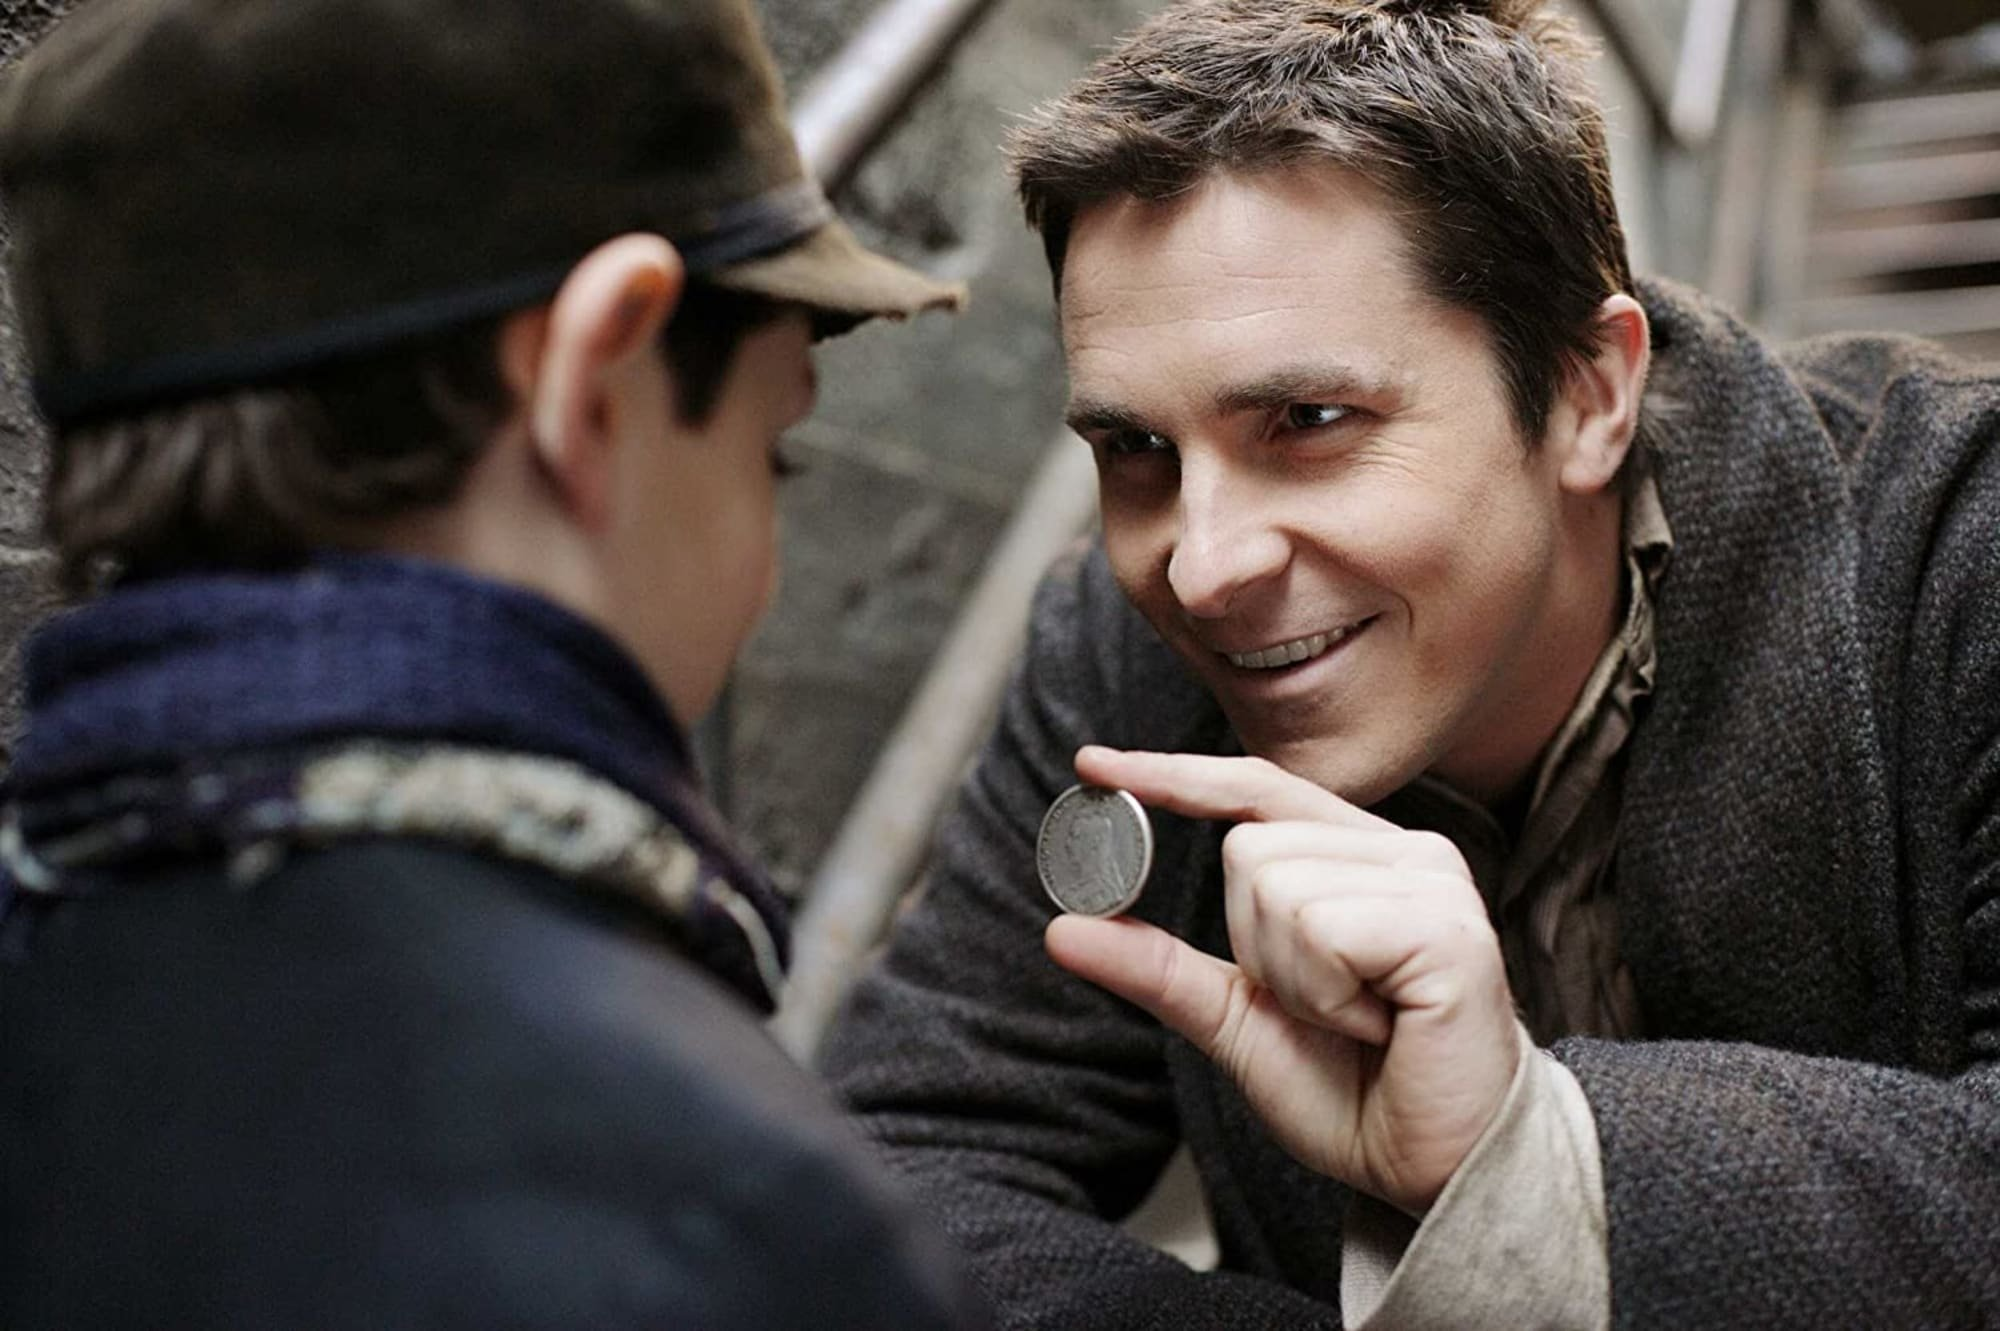 Christian Bale as magician Alfred Borden in a still shot from 'The Prestige'.